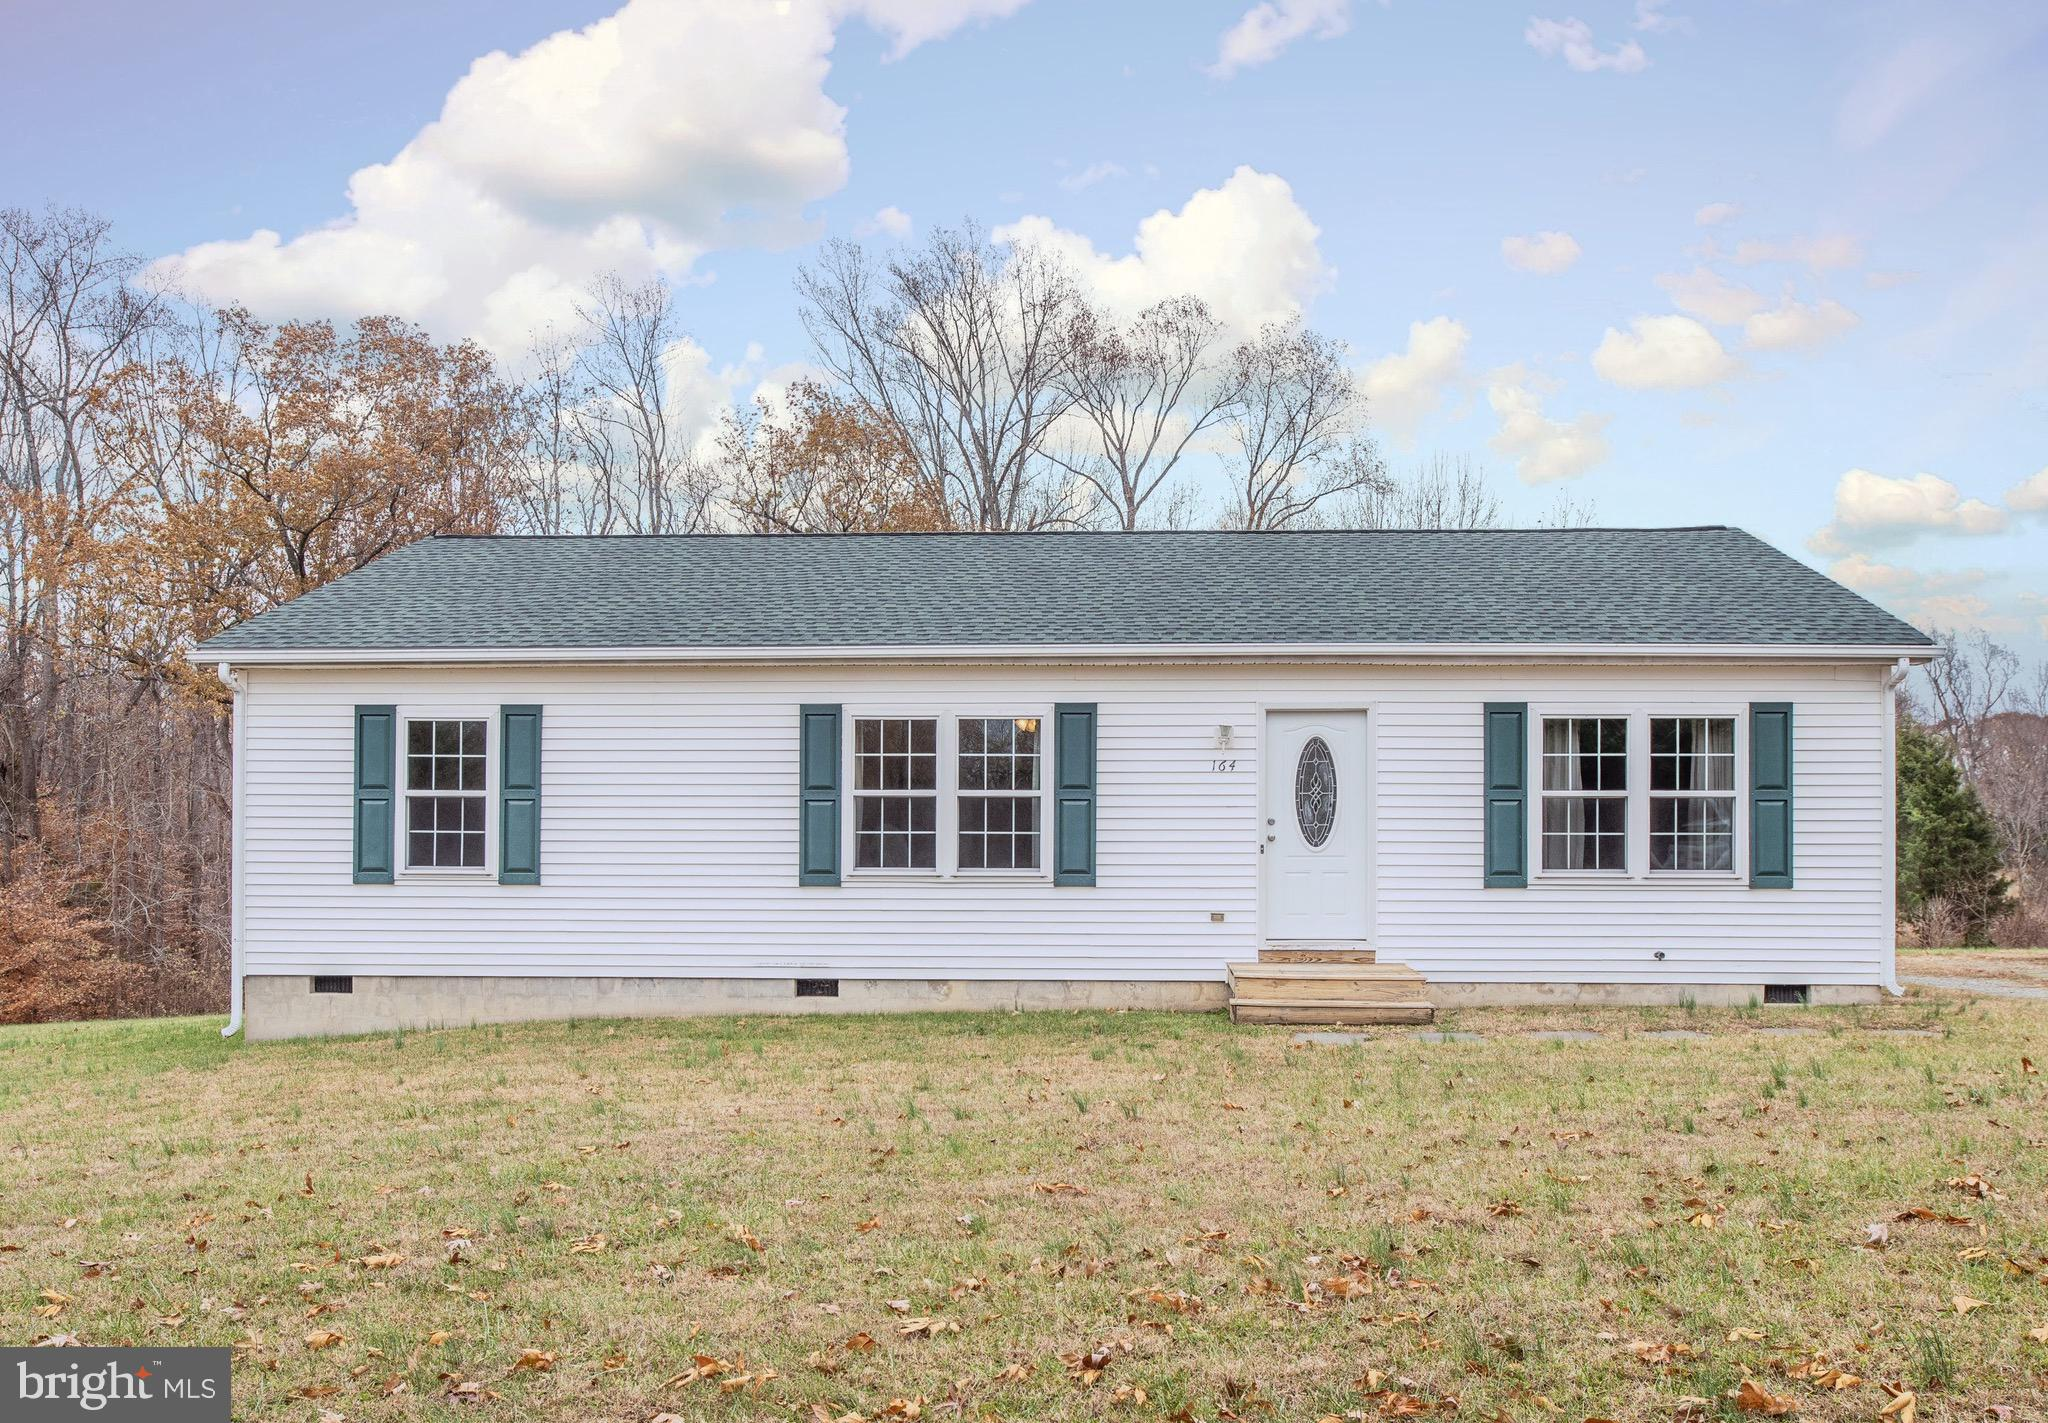 ONE LEVEL LIVING IN A QUIET COUNTRY SETTING YET VERY CLOSE TO VRE, I95, DOWNTOWN AND SHOPPING IS A M